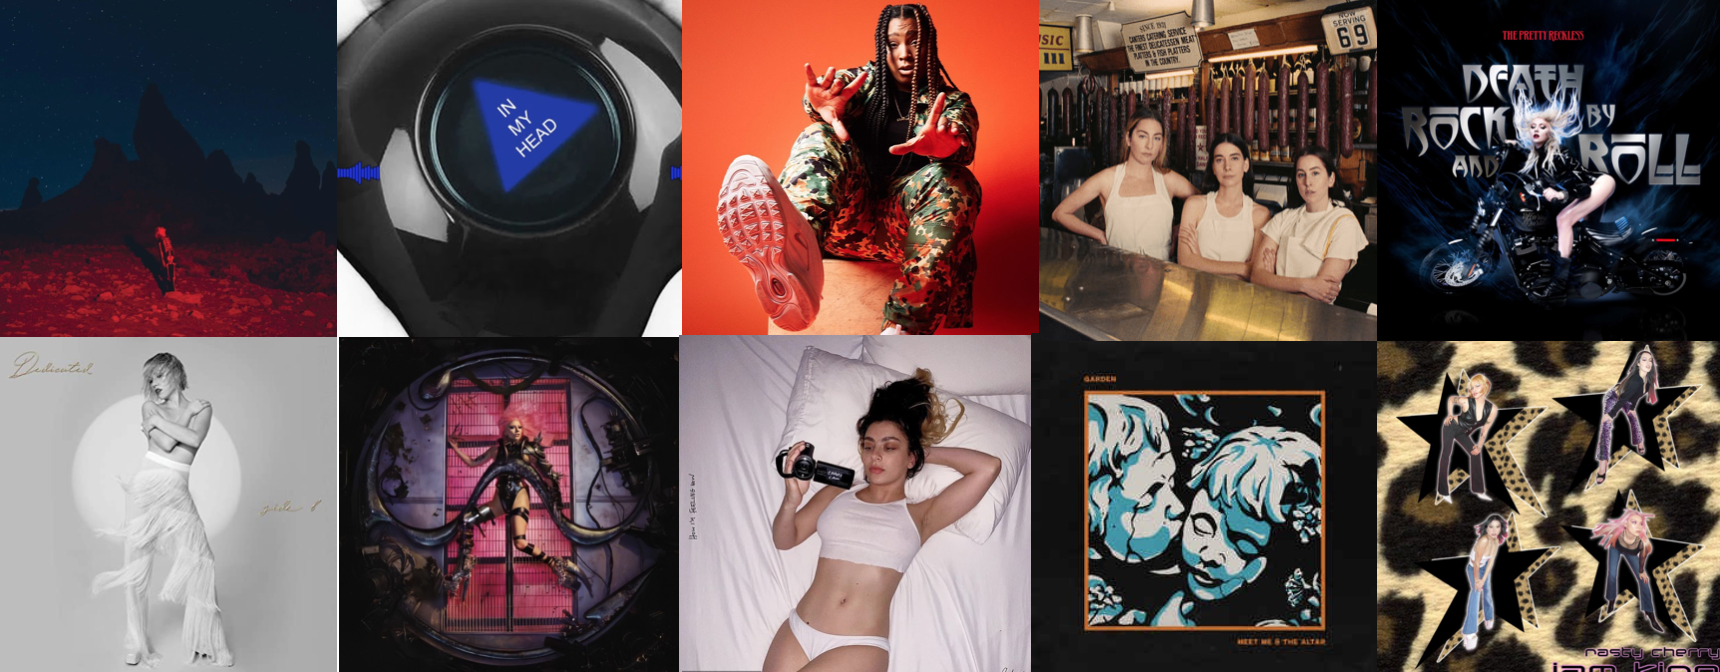 New Music: May 2020 – a monthly round-up of the latest releases